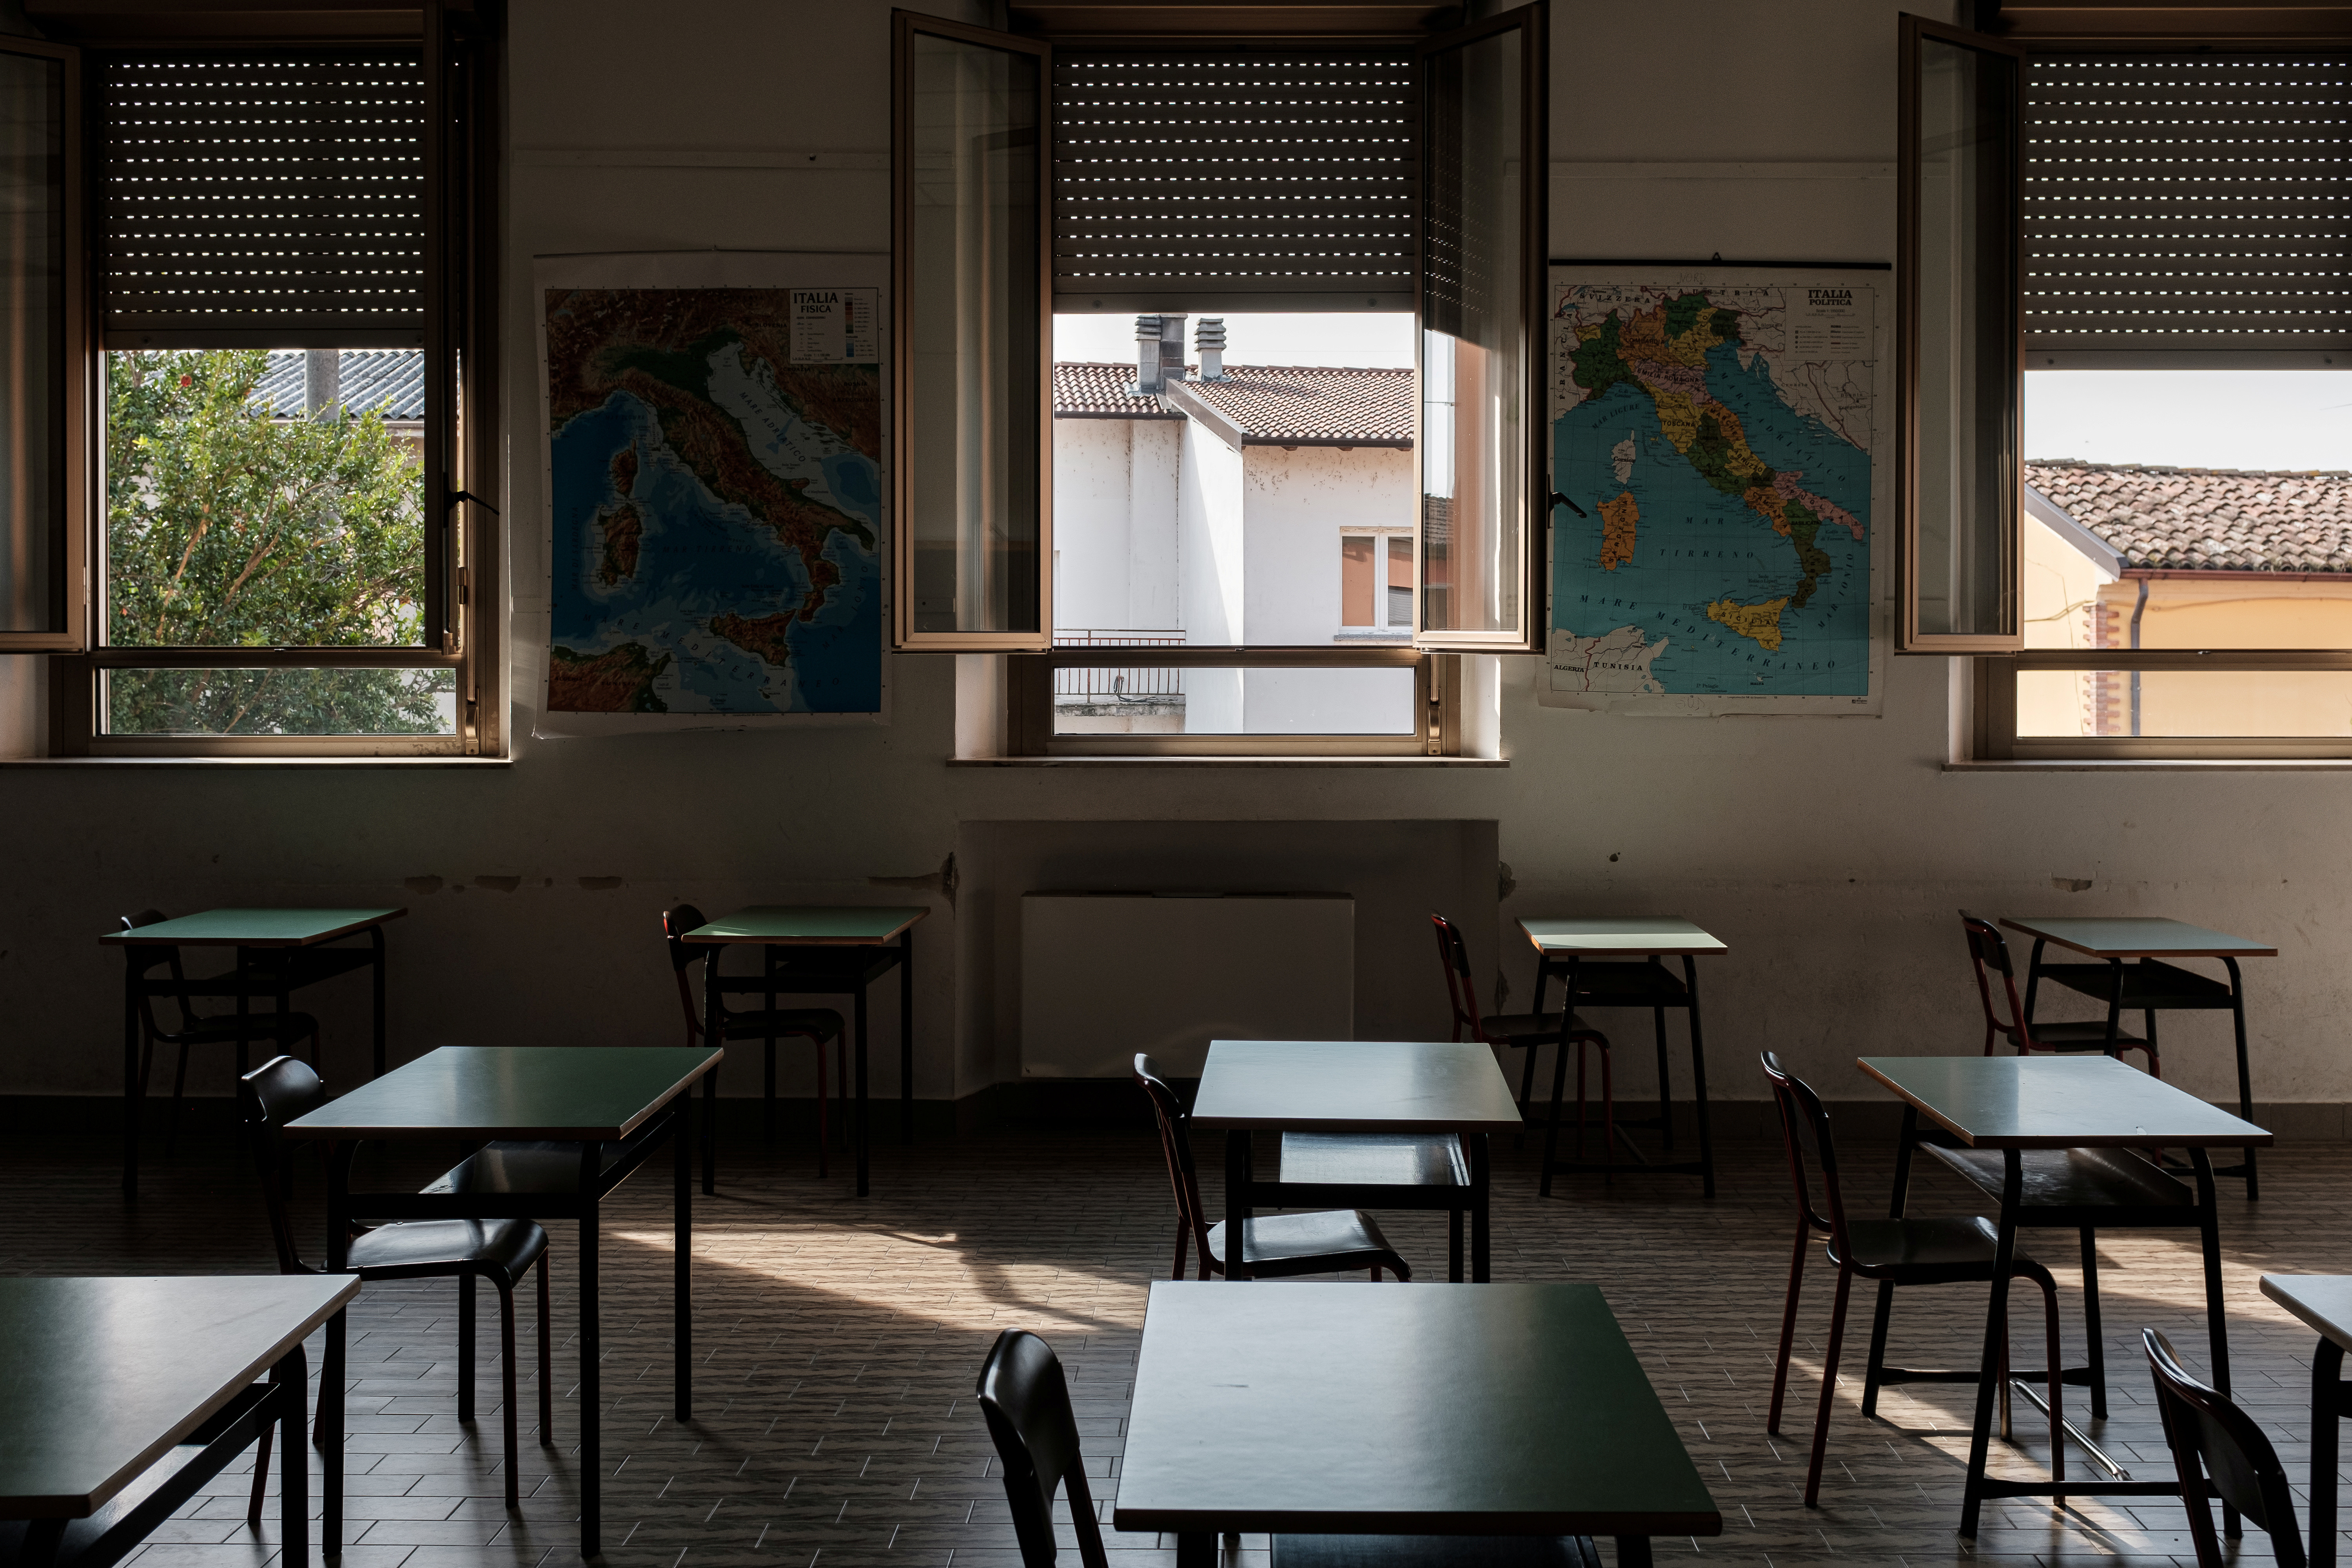 Teacher Marzio Toniolo took this photo of single desks set up in a classroom ahead of the September 14 reopening of his primary school, when children return for the first time since the end of February when Italy's original 'red zone' towns were put under lockdown, adhering to strict regulations to avoid coronavirus disease (COVID-19) contagion, in Santo Stefano Lodigiano,  Italy, September 10, 2020. Picture taken September 10, 2020. REUTERS/Marzio Toniolo - RC2YYI9B1CT3